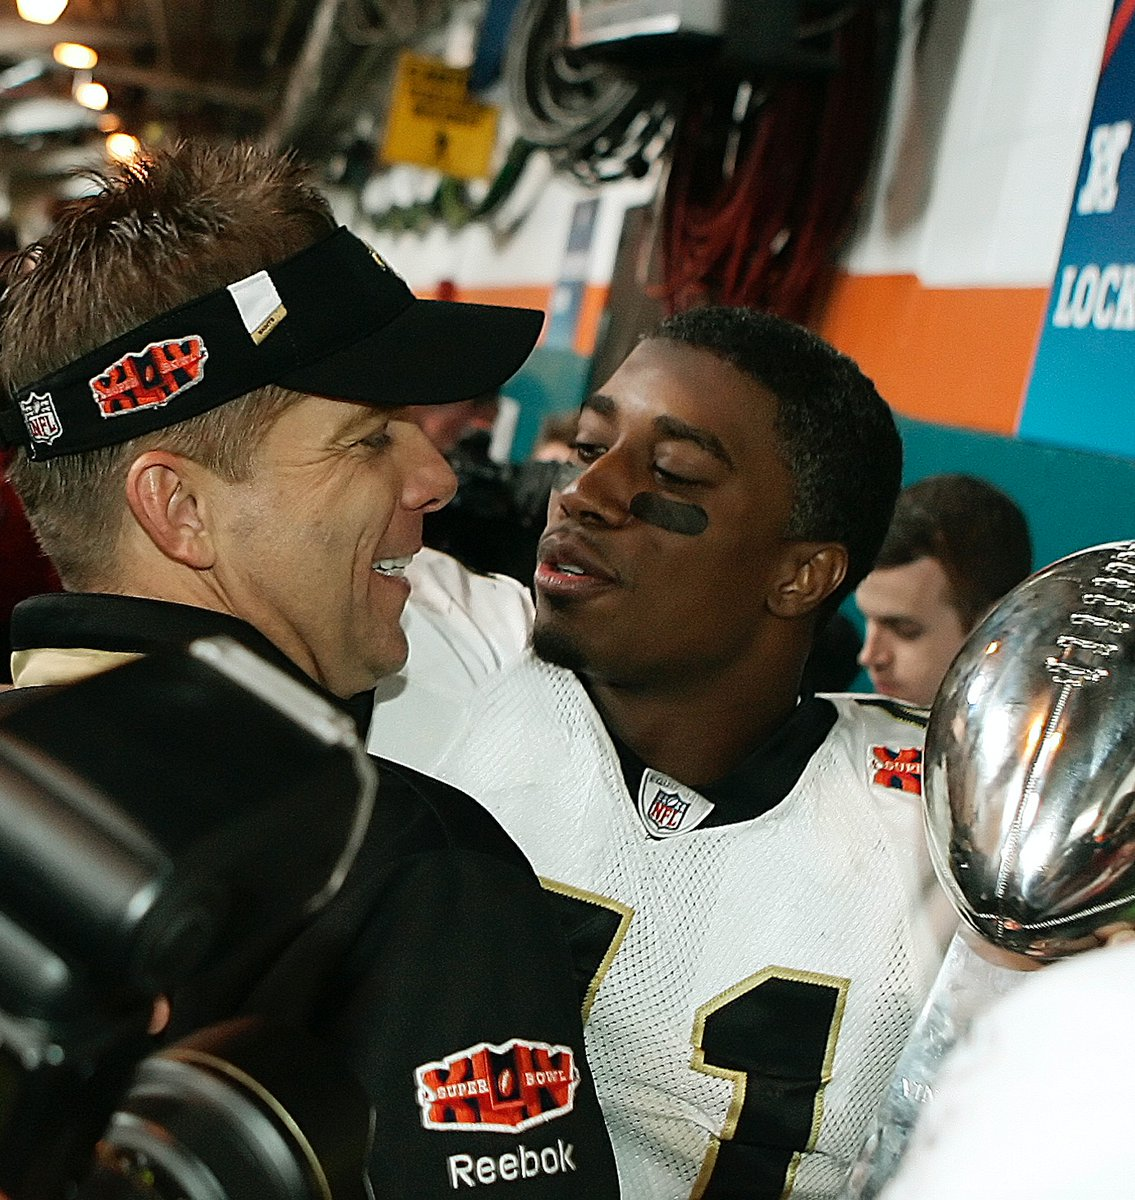 These two gentlemen are part of a draft class that completely changed the culture and began the pillars of a Super Bowl championship run, - @SeanPayton on the newest #Saints Hall of Famers: @Harp41 and @J_7TRE_E